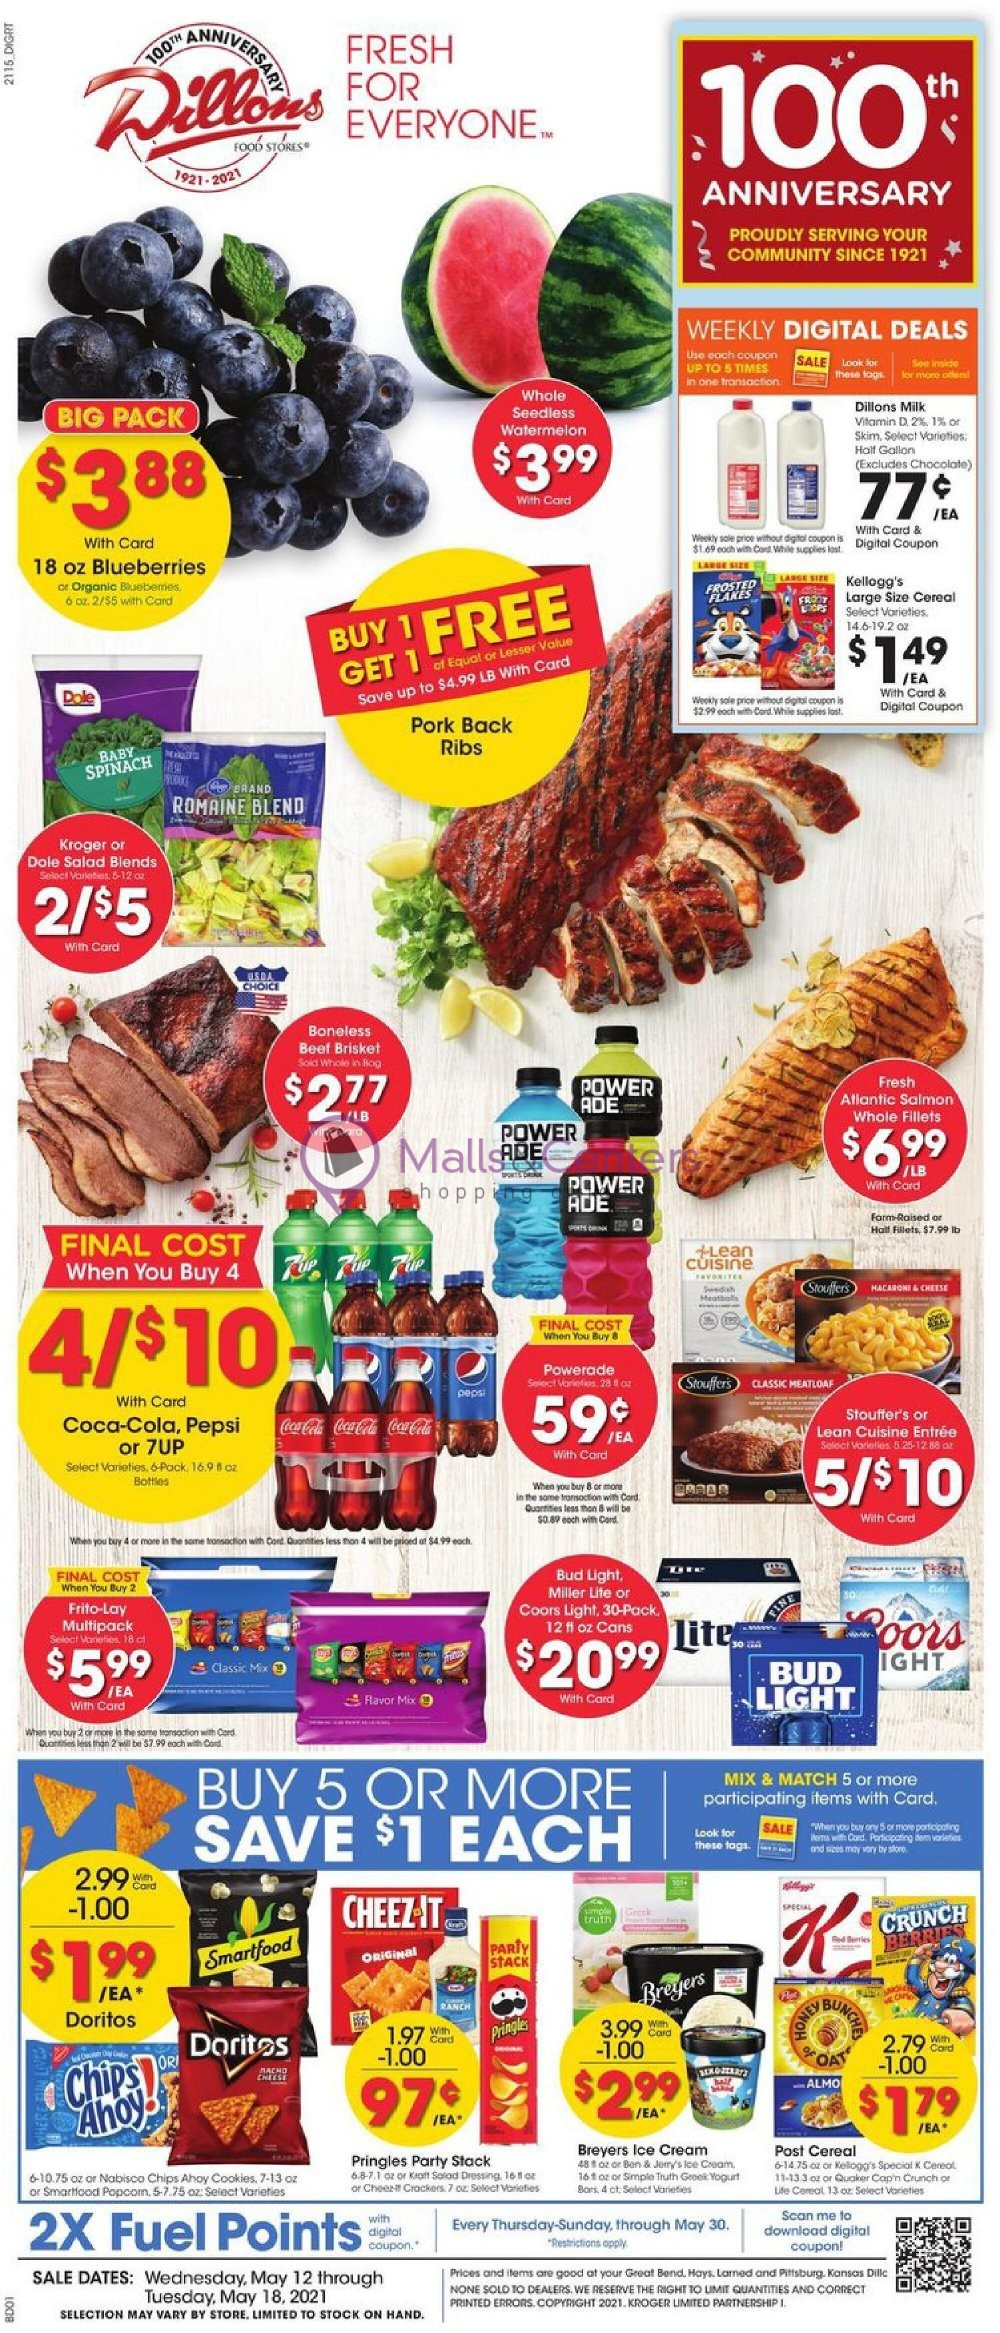 weekly ads Dillons - page 1 - mallscenters.com